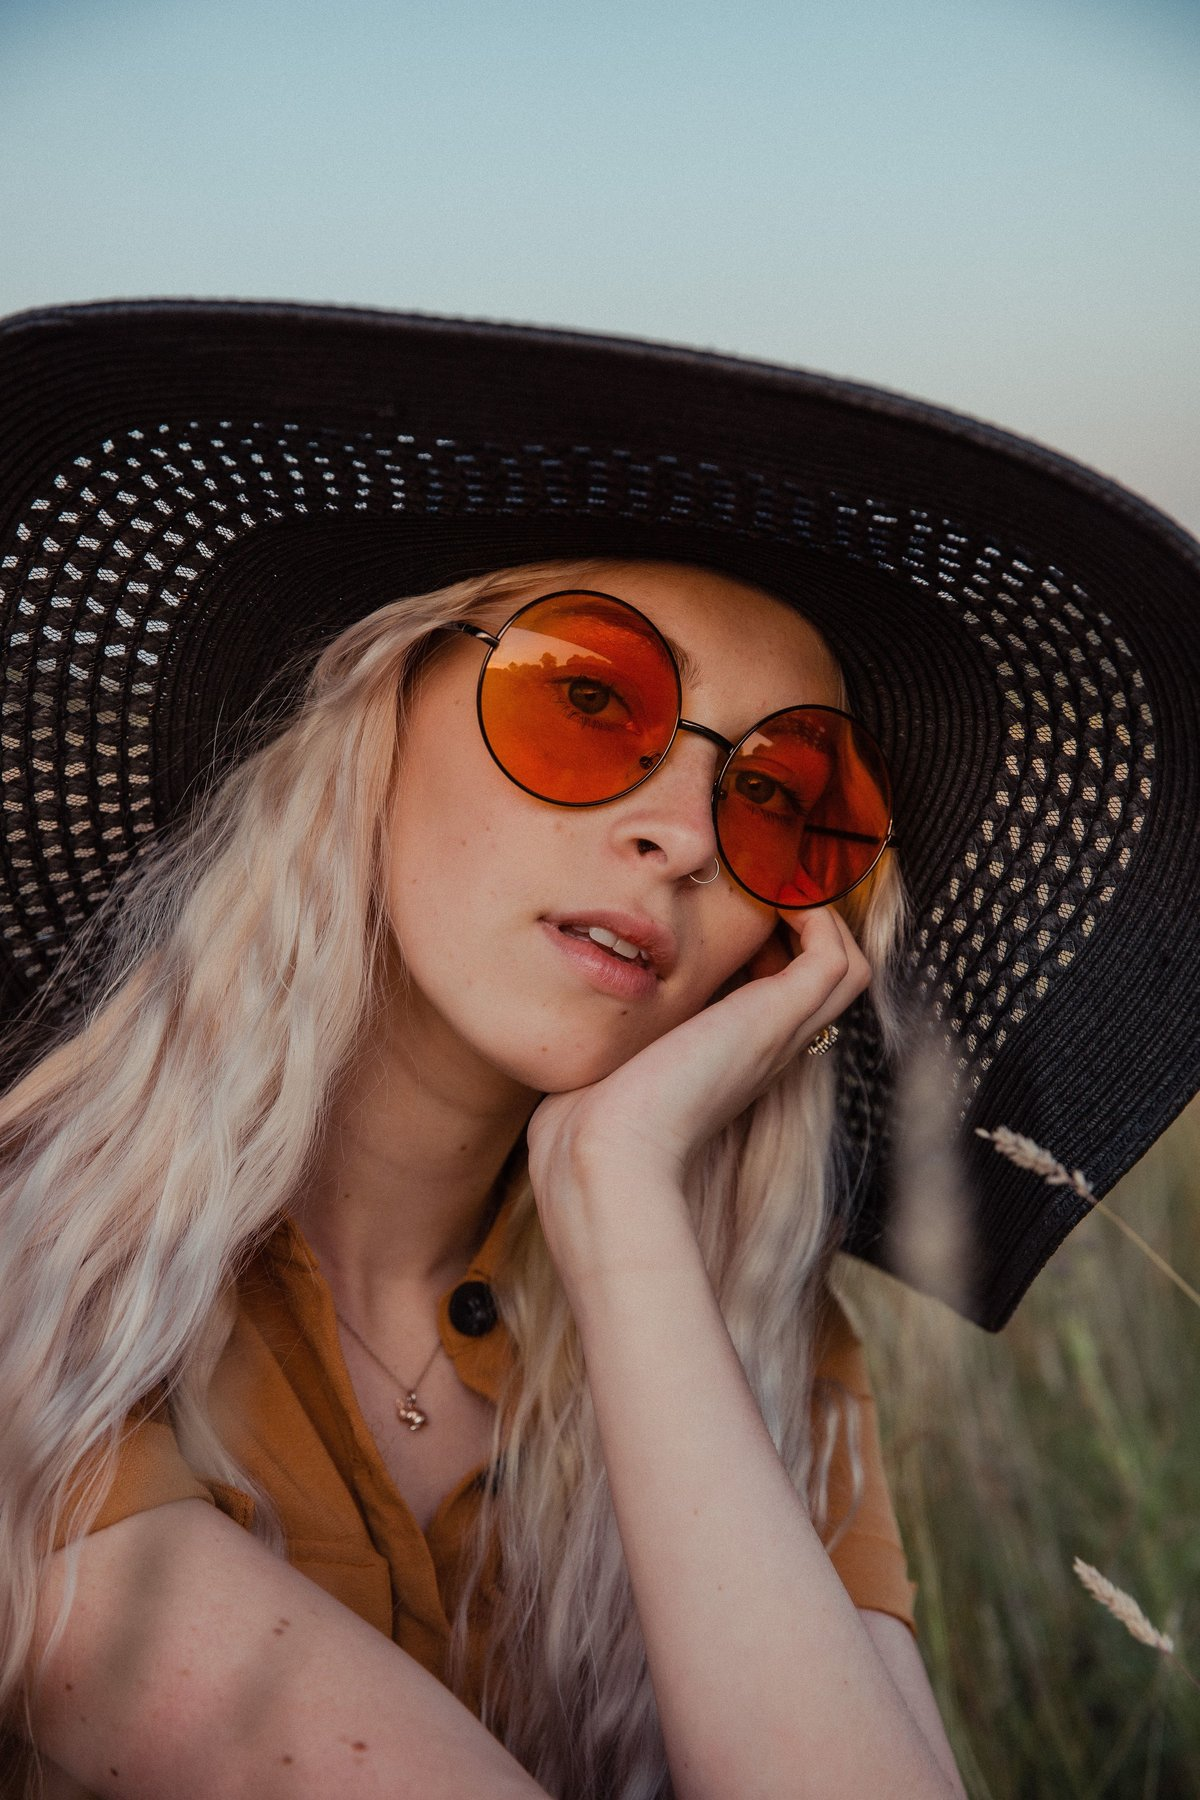 Amber sitting in the grass at golden hour, wearing orange sunglasses and a black straw hat